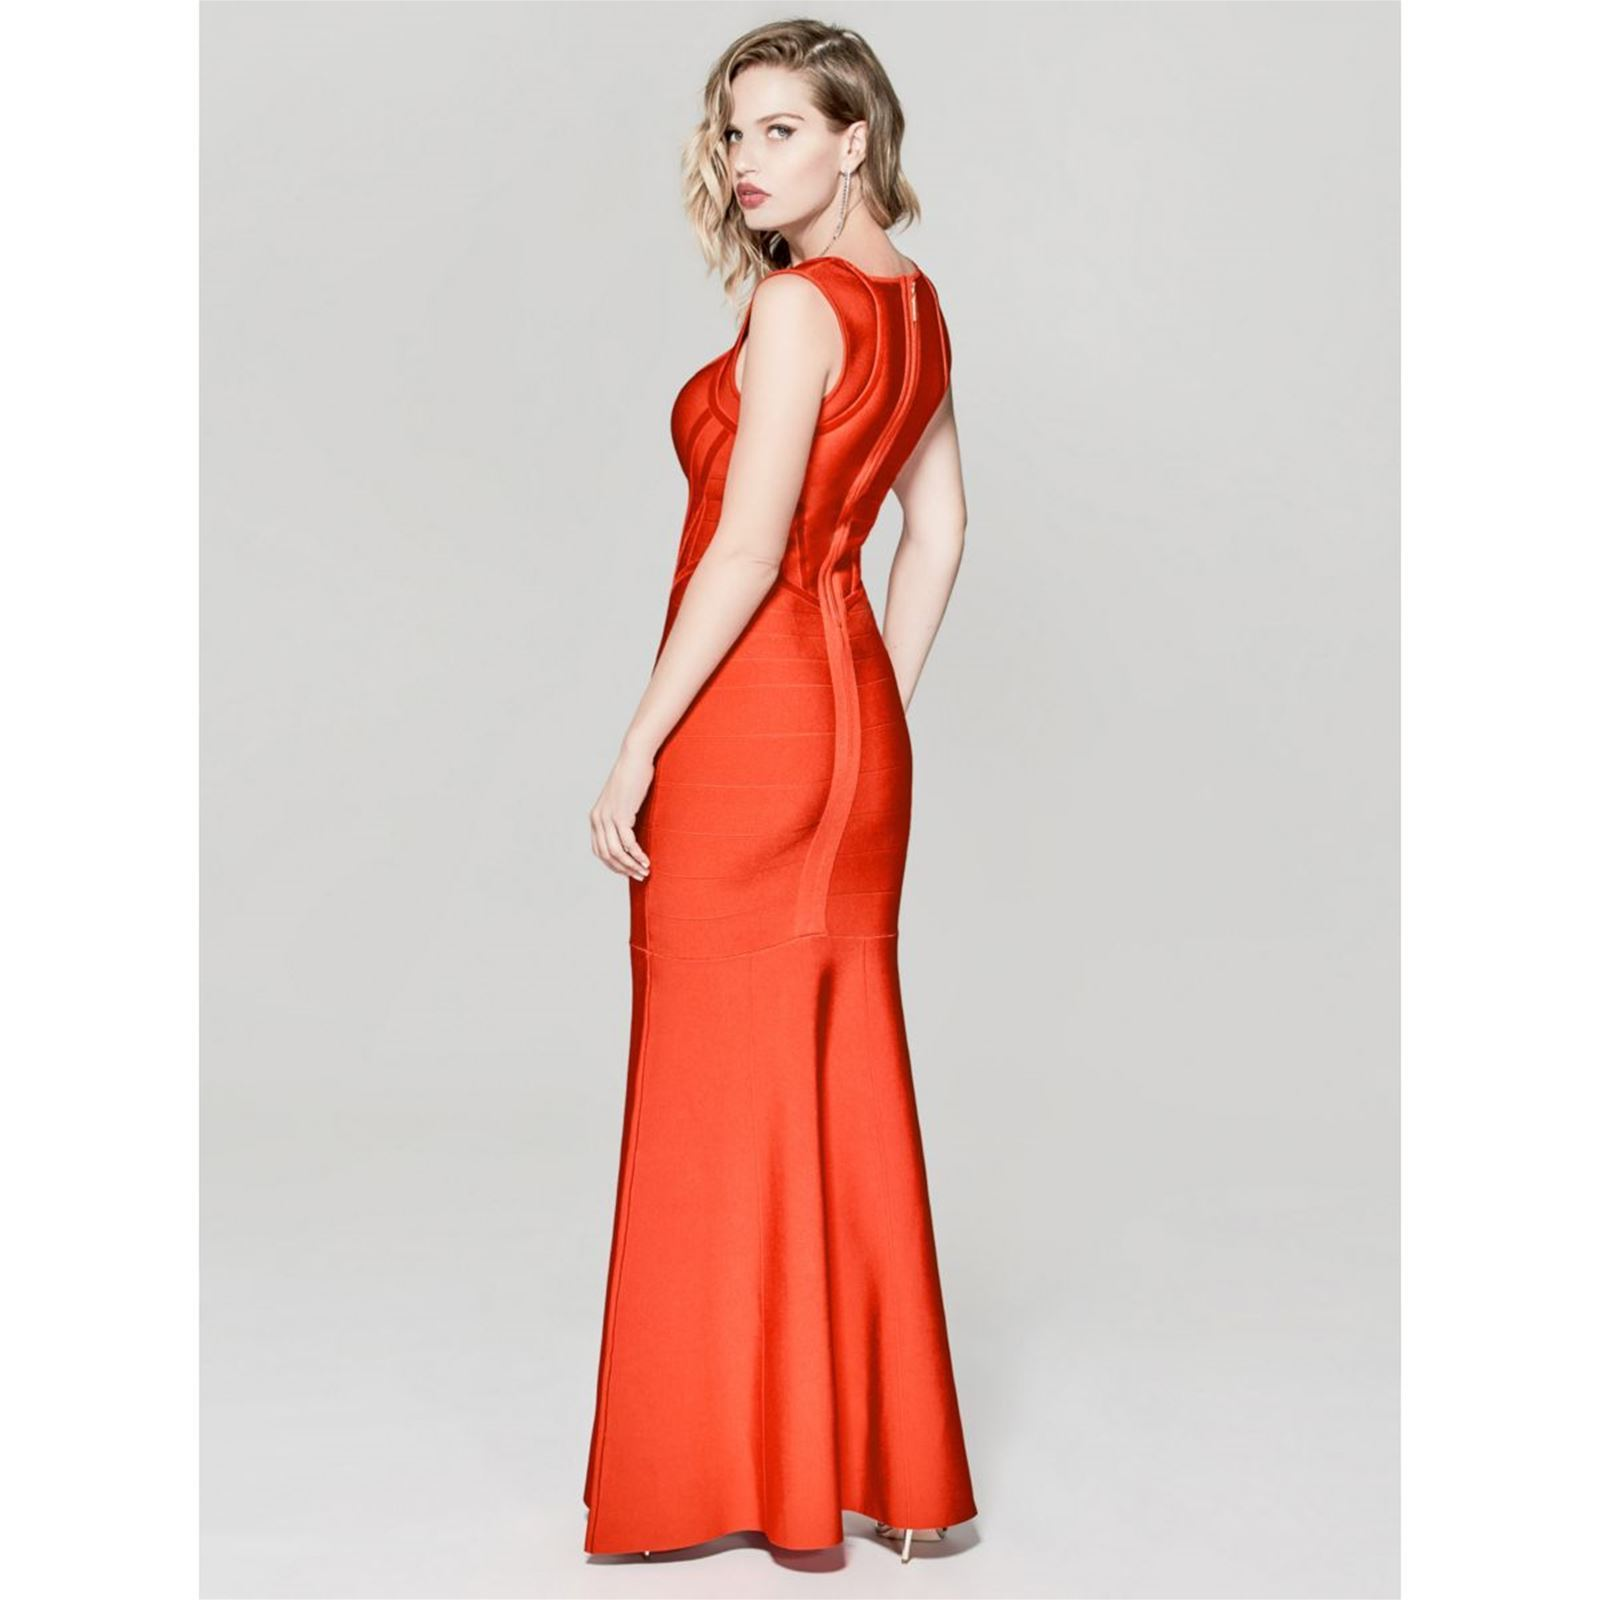 Marciano Los Angeles Robe longue bandage - rouge   BrandAlley 8d42cc5ddc04